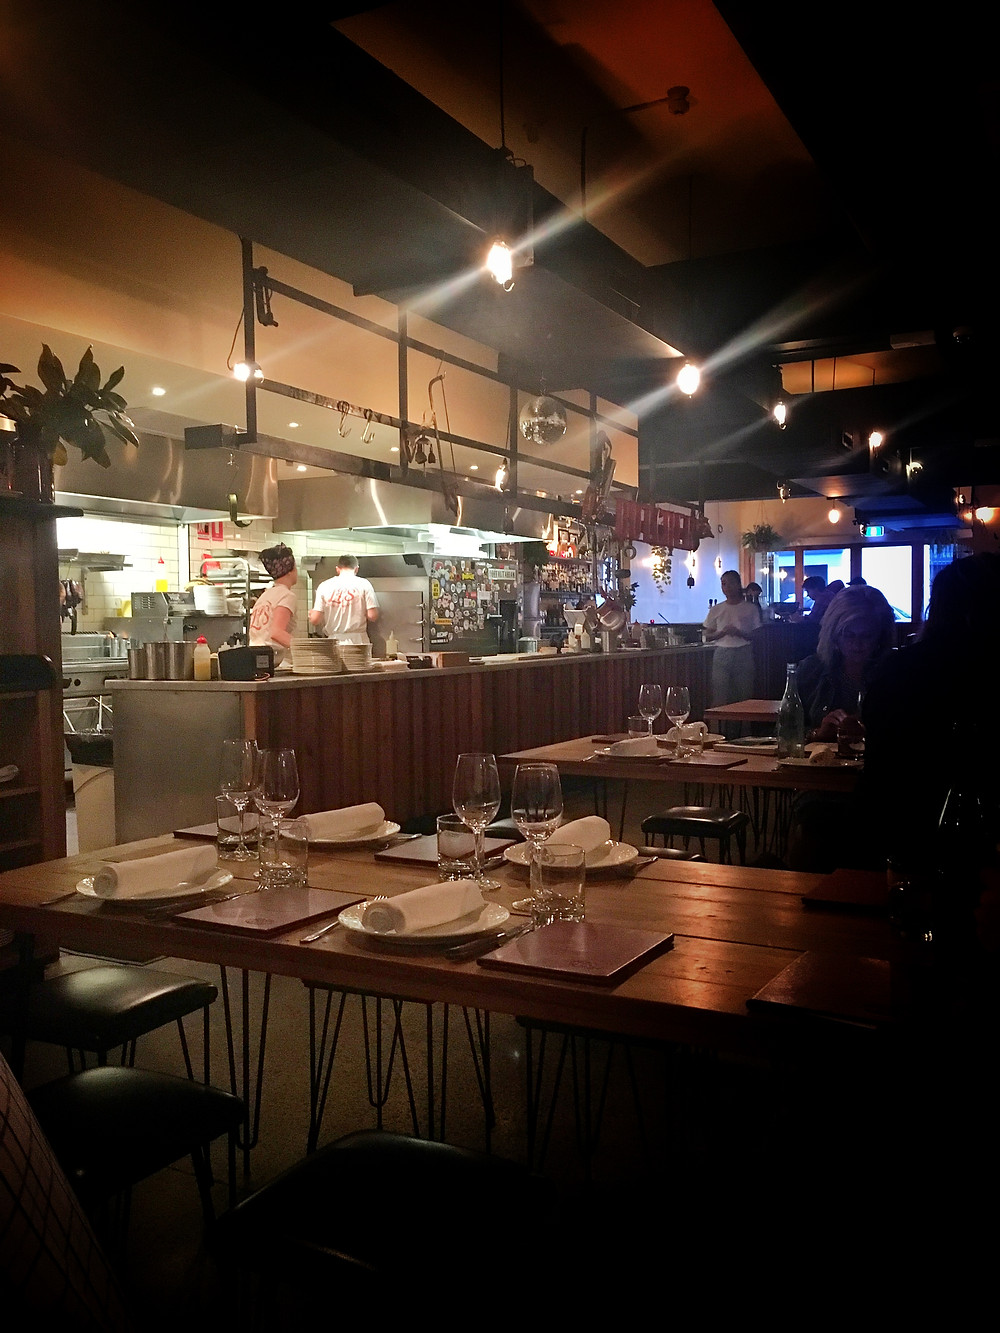 clovar-creative-lps-quality-meats-chippendale-interior-kitchen